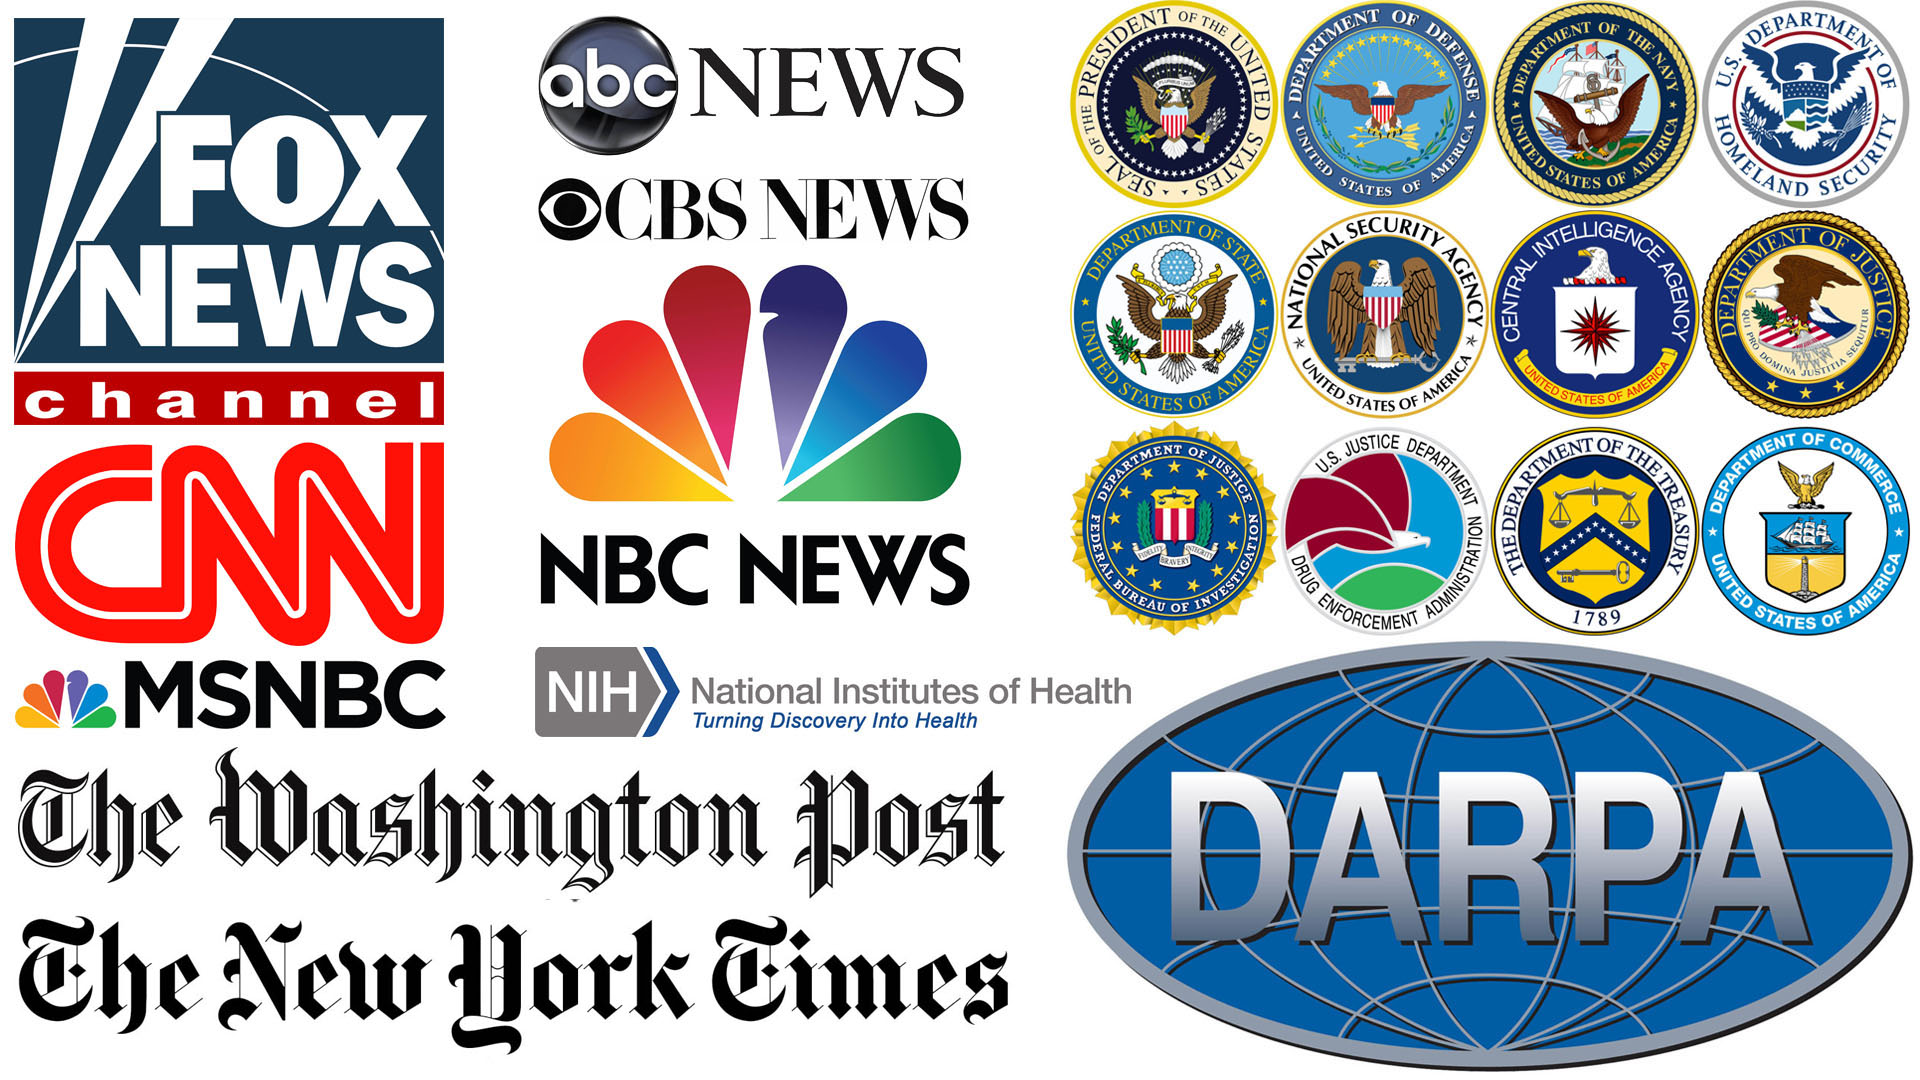 Many Media and Government Logos